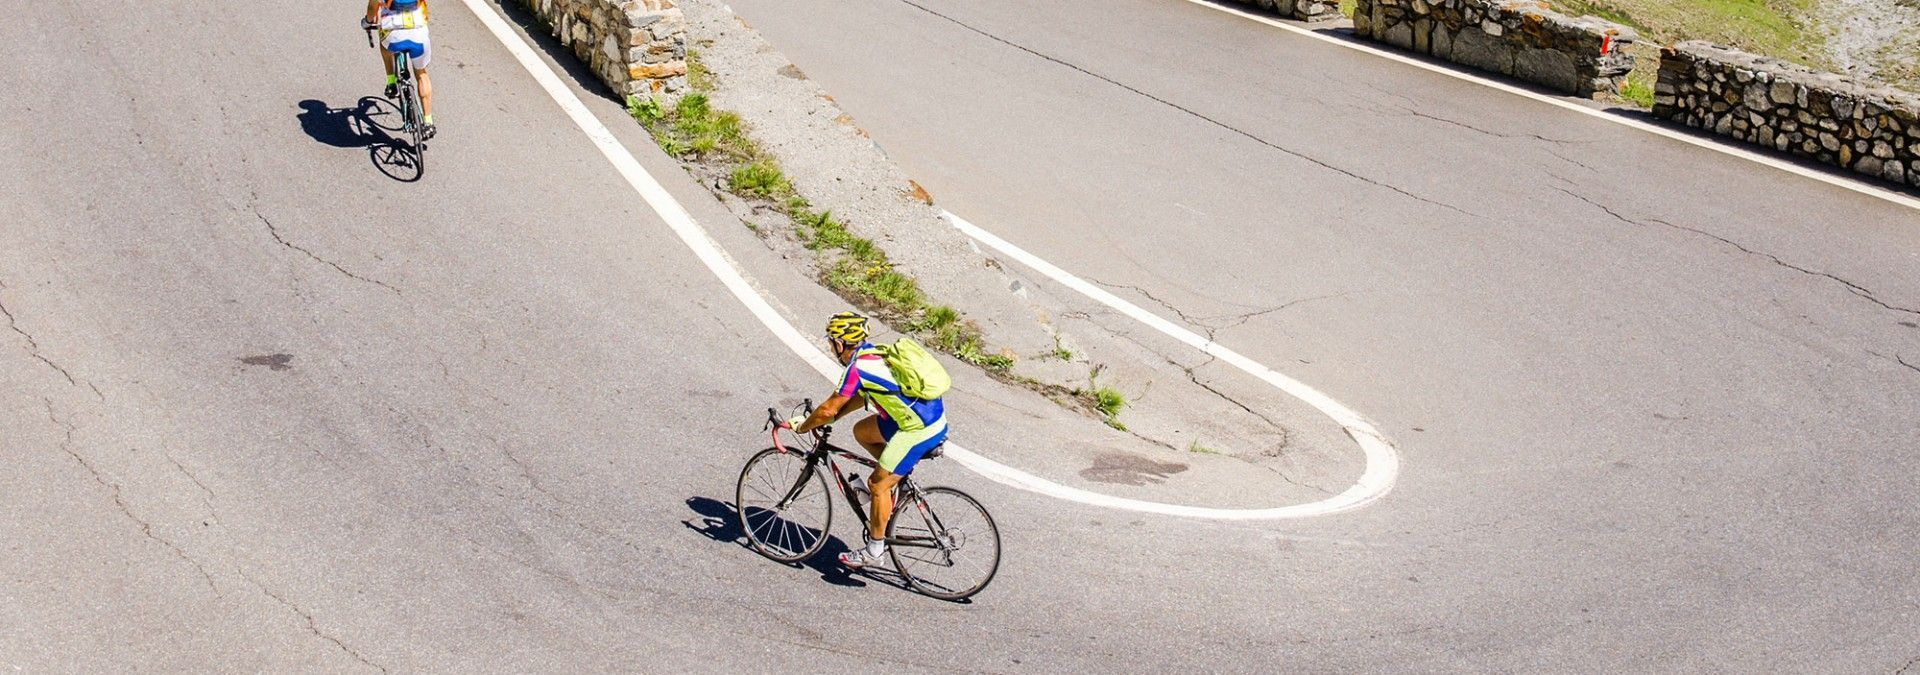 Cyclist_on_hairpin_bends_Stelvio_Pass_Italy.jpg